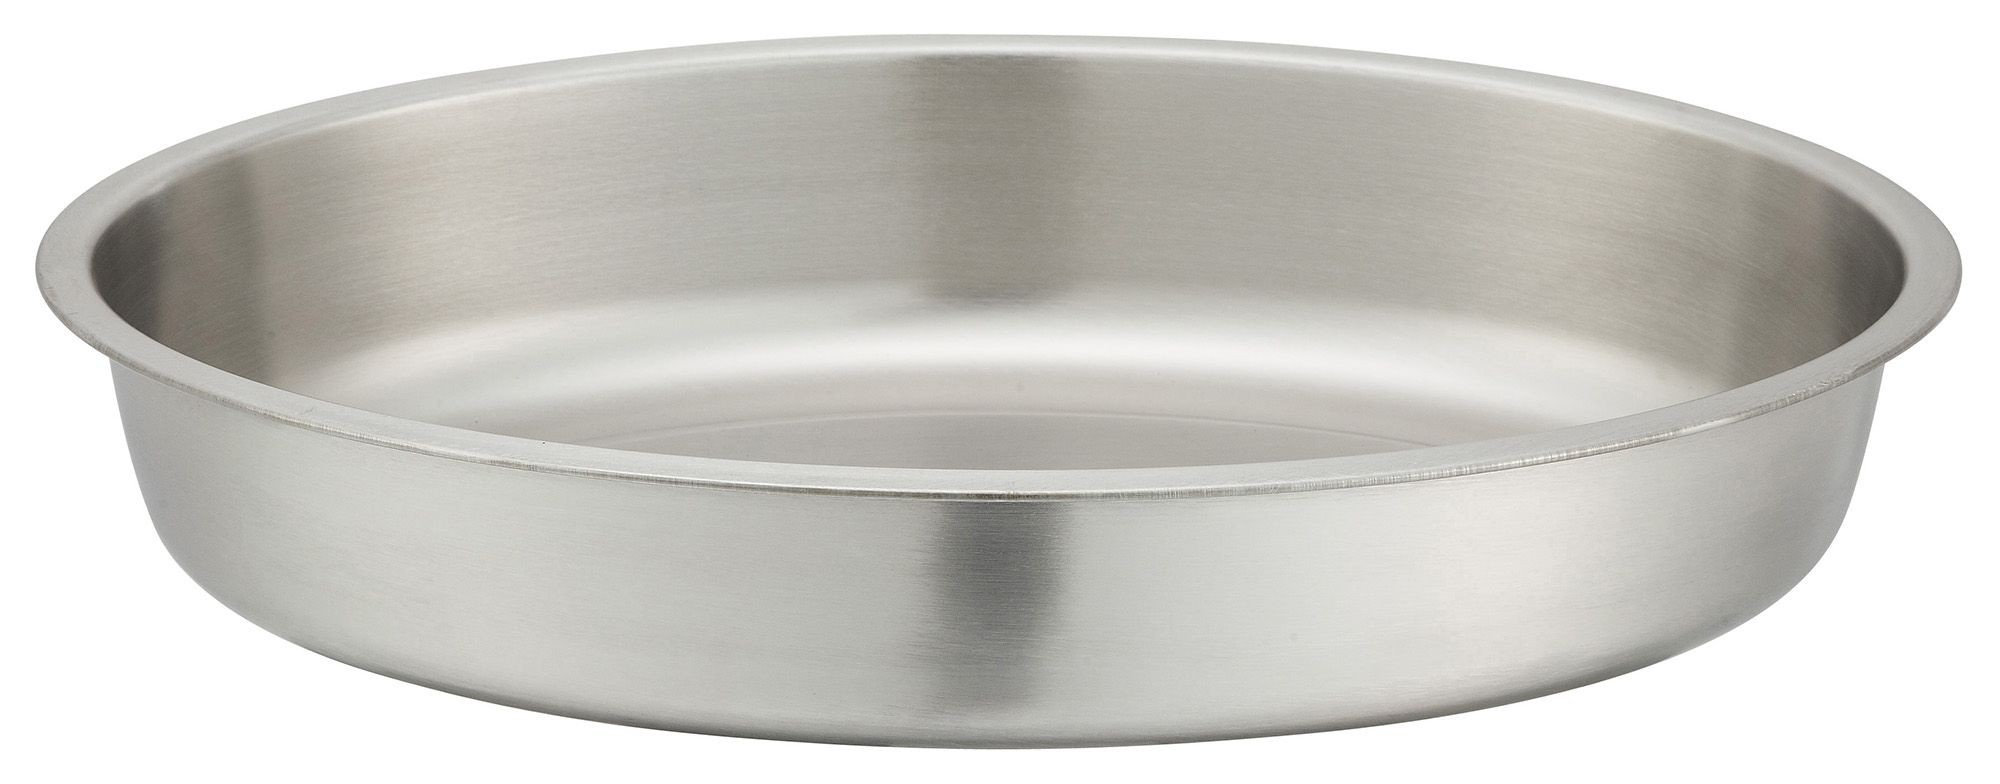 Winco 202-WP Water Pan for 6 Qt. Gold-Accented Malibu Oval Chafer 202